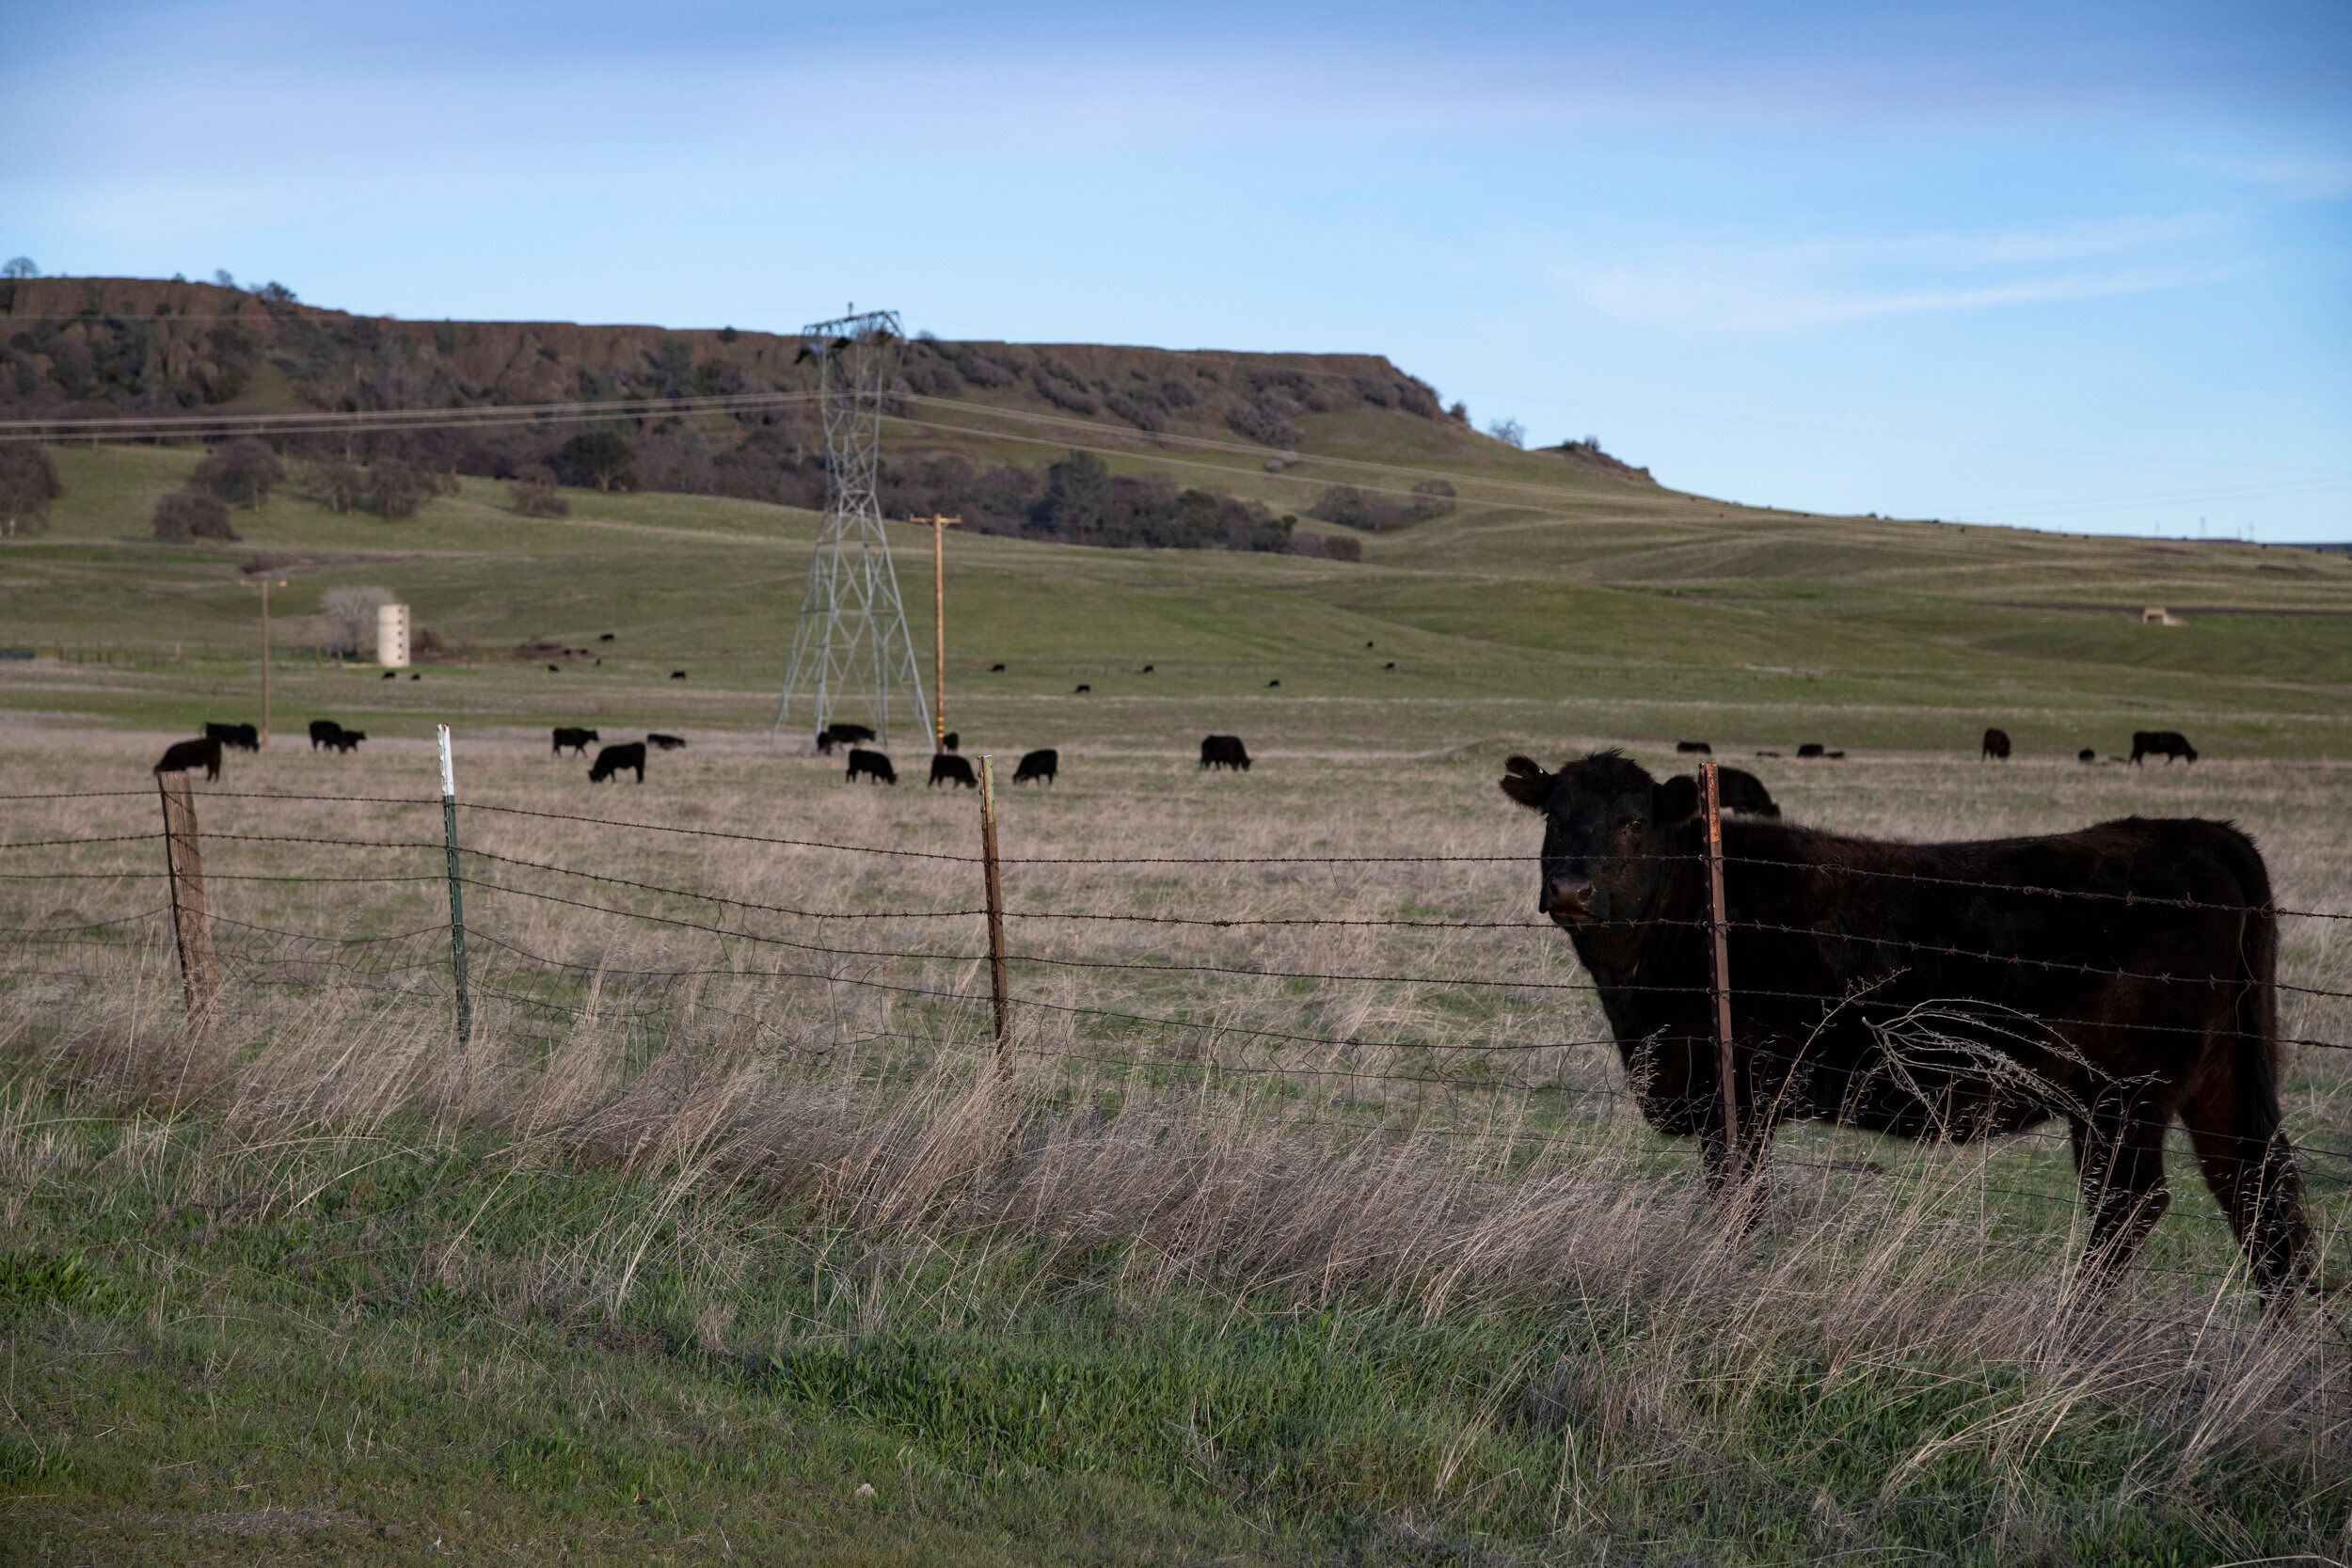 Scenes from Brown's ranch in Butte County. She refers to it as Brown Ranch, but it is also known as Table Mountain Ranch.